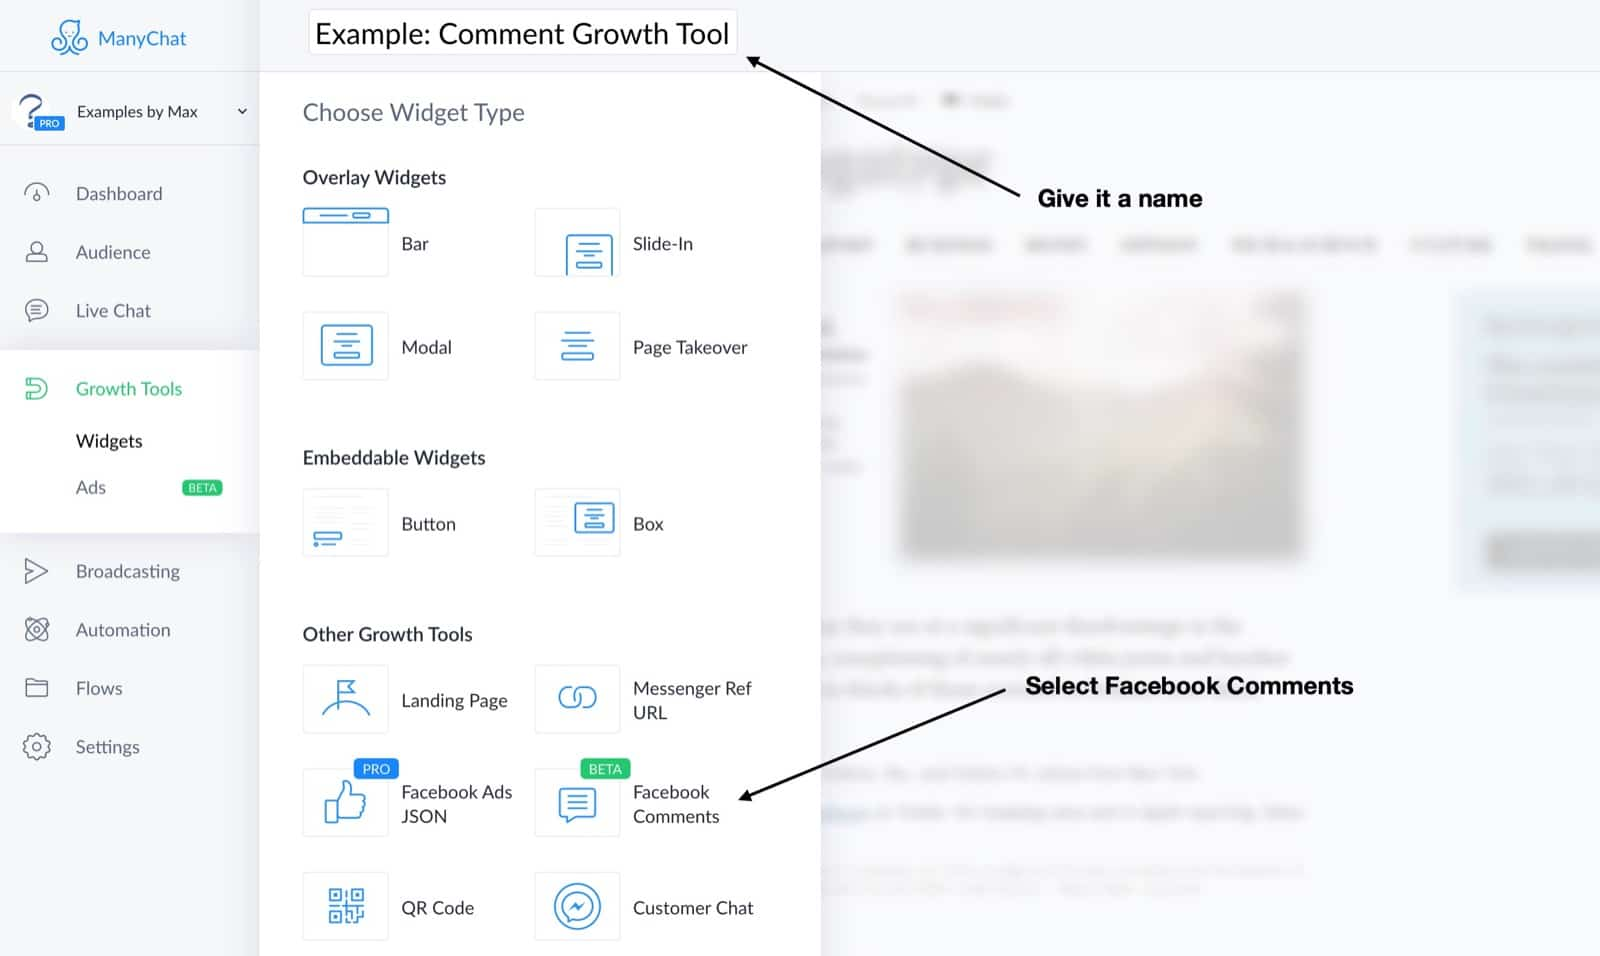 Create the manychat comment growth tool